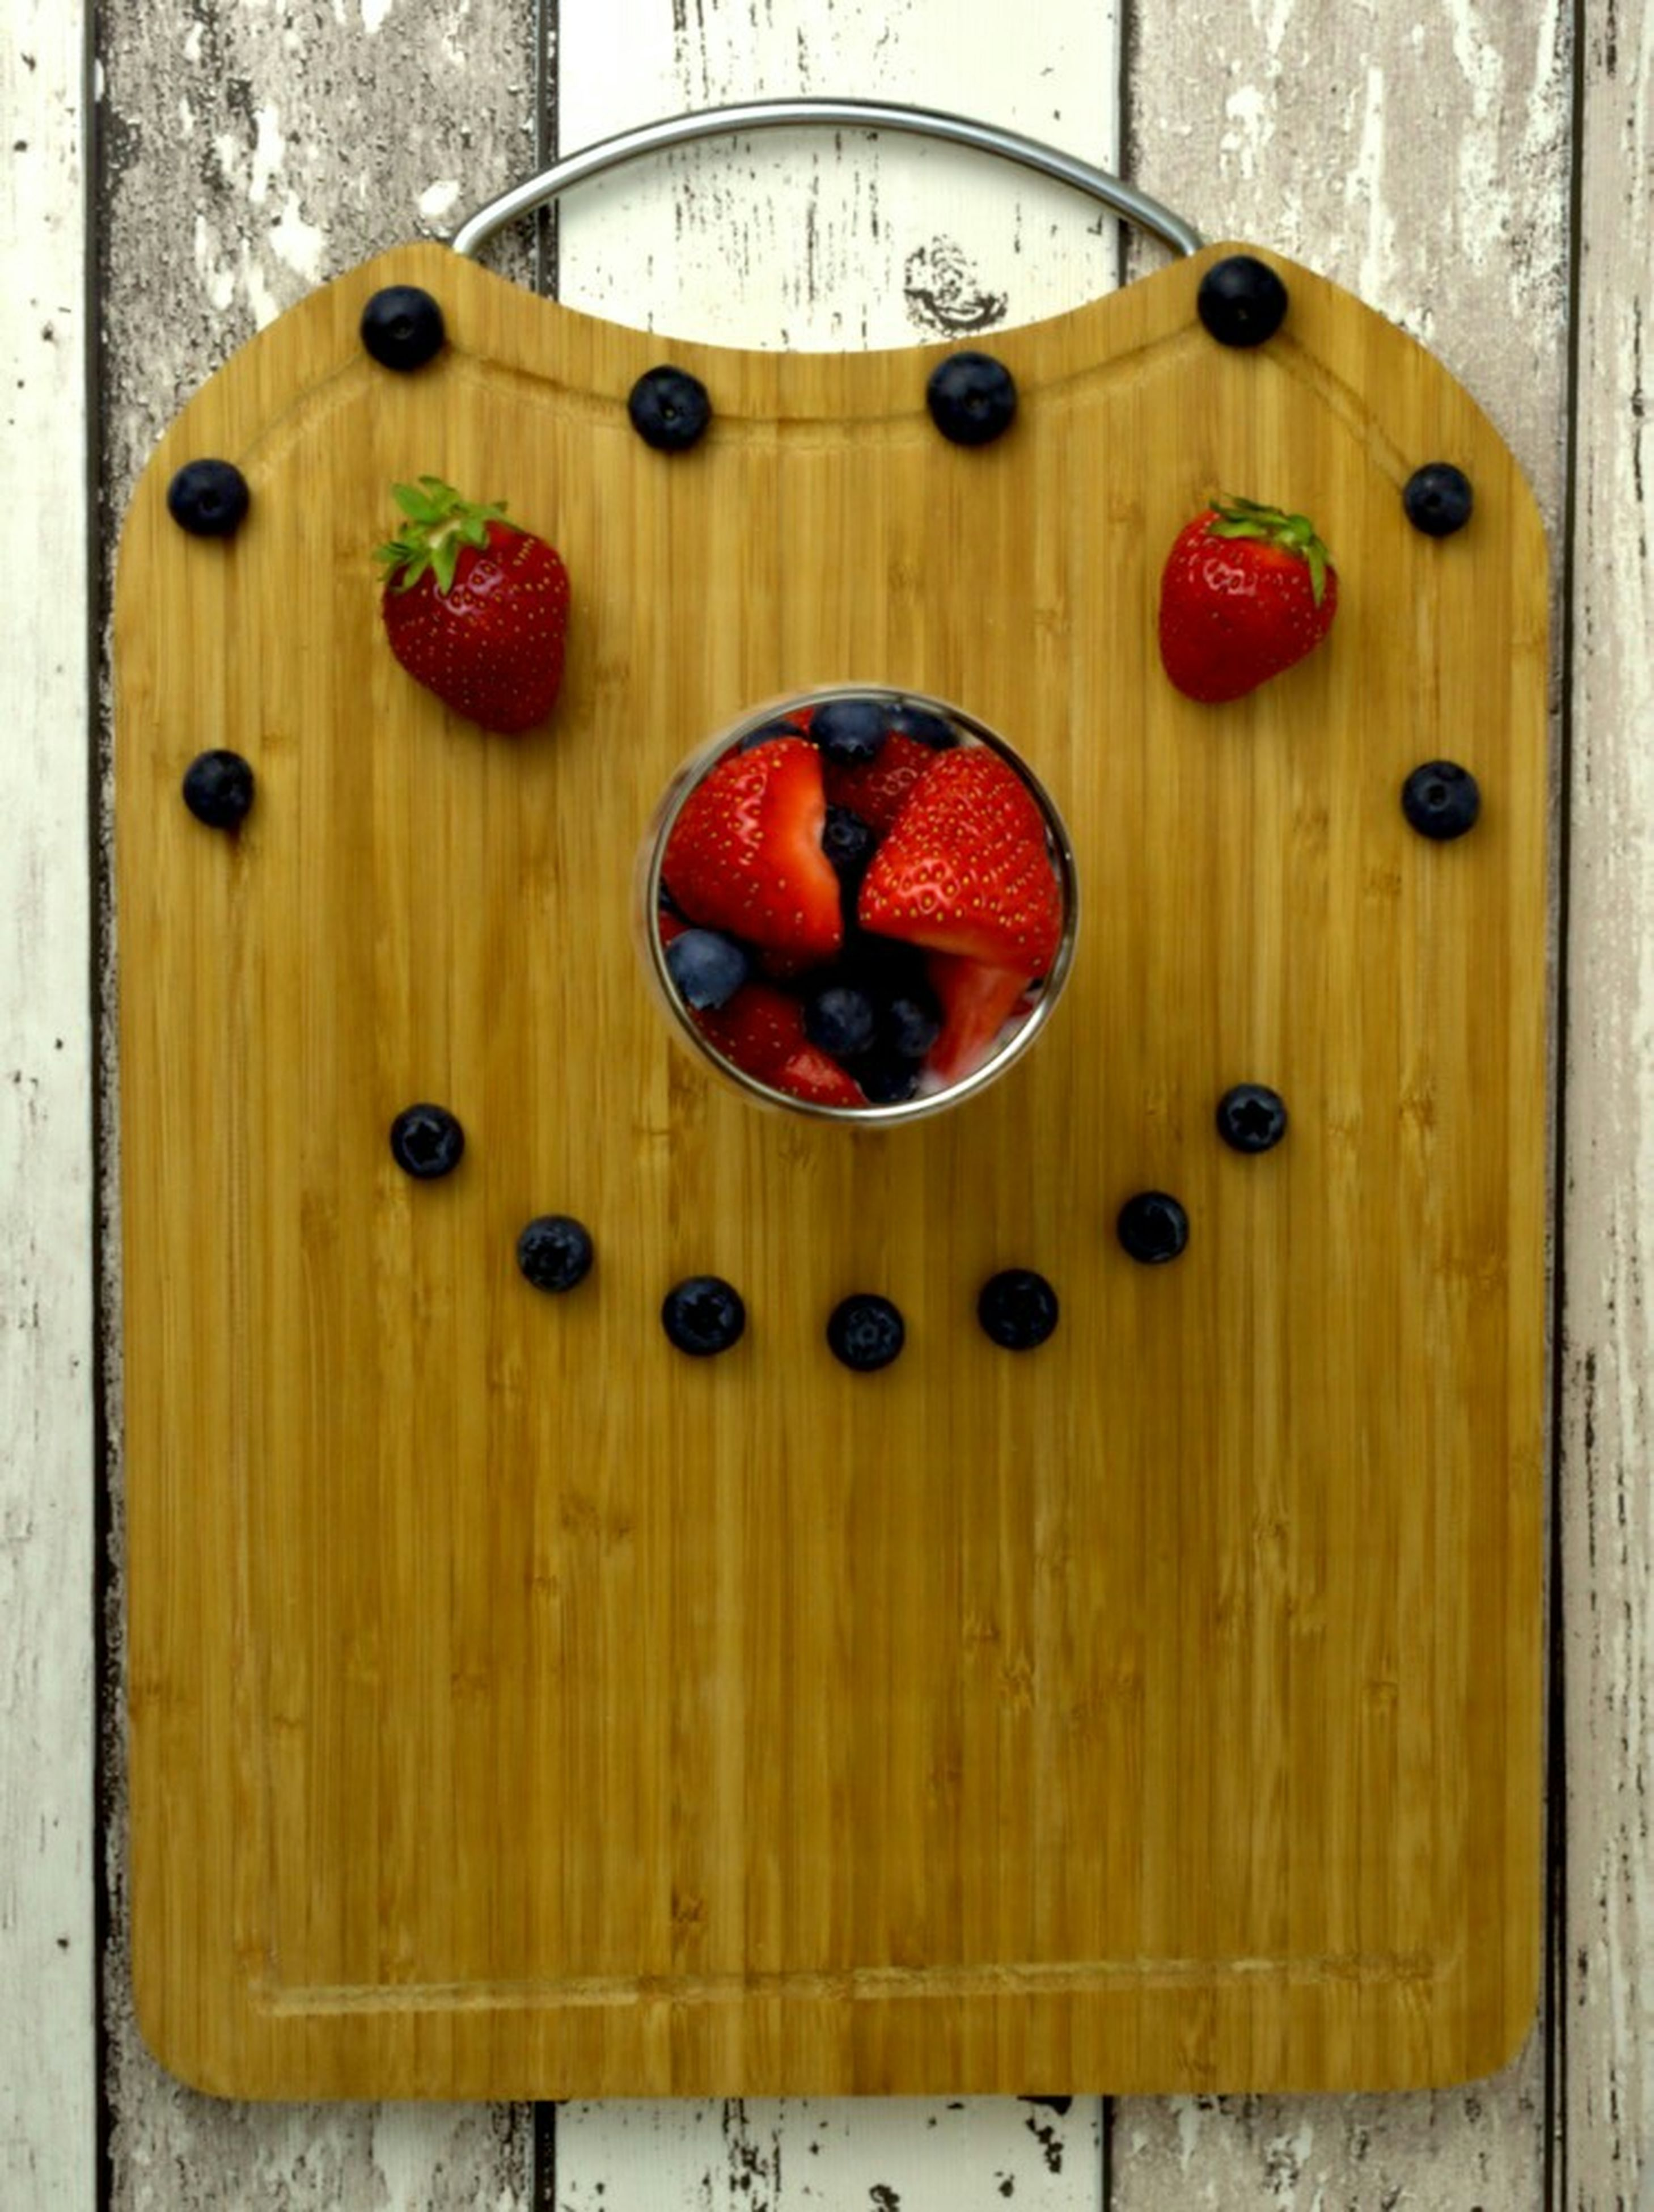 red, indoors, wood - material, circle, close-up, wooden, pattern, metal, directly above, wall - building feature, decoration, no people, door, geometric shape, still life, hanging, built structure, wood, heart shape, day